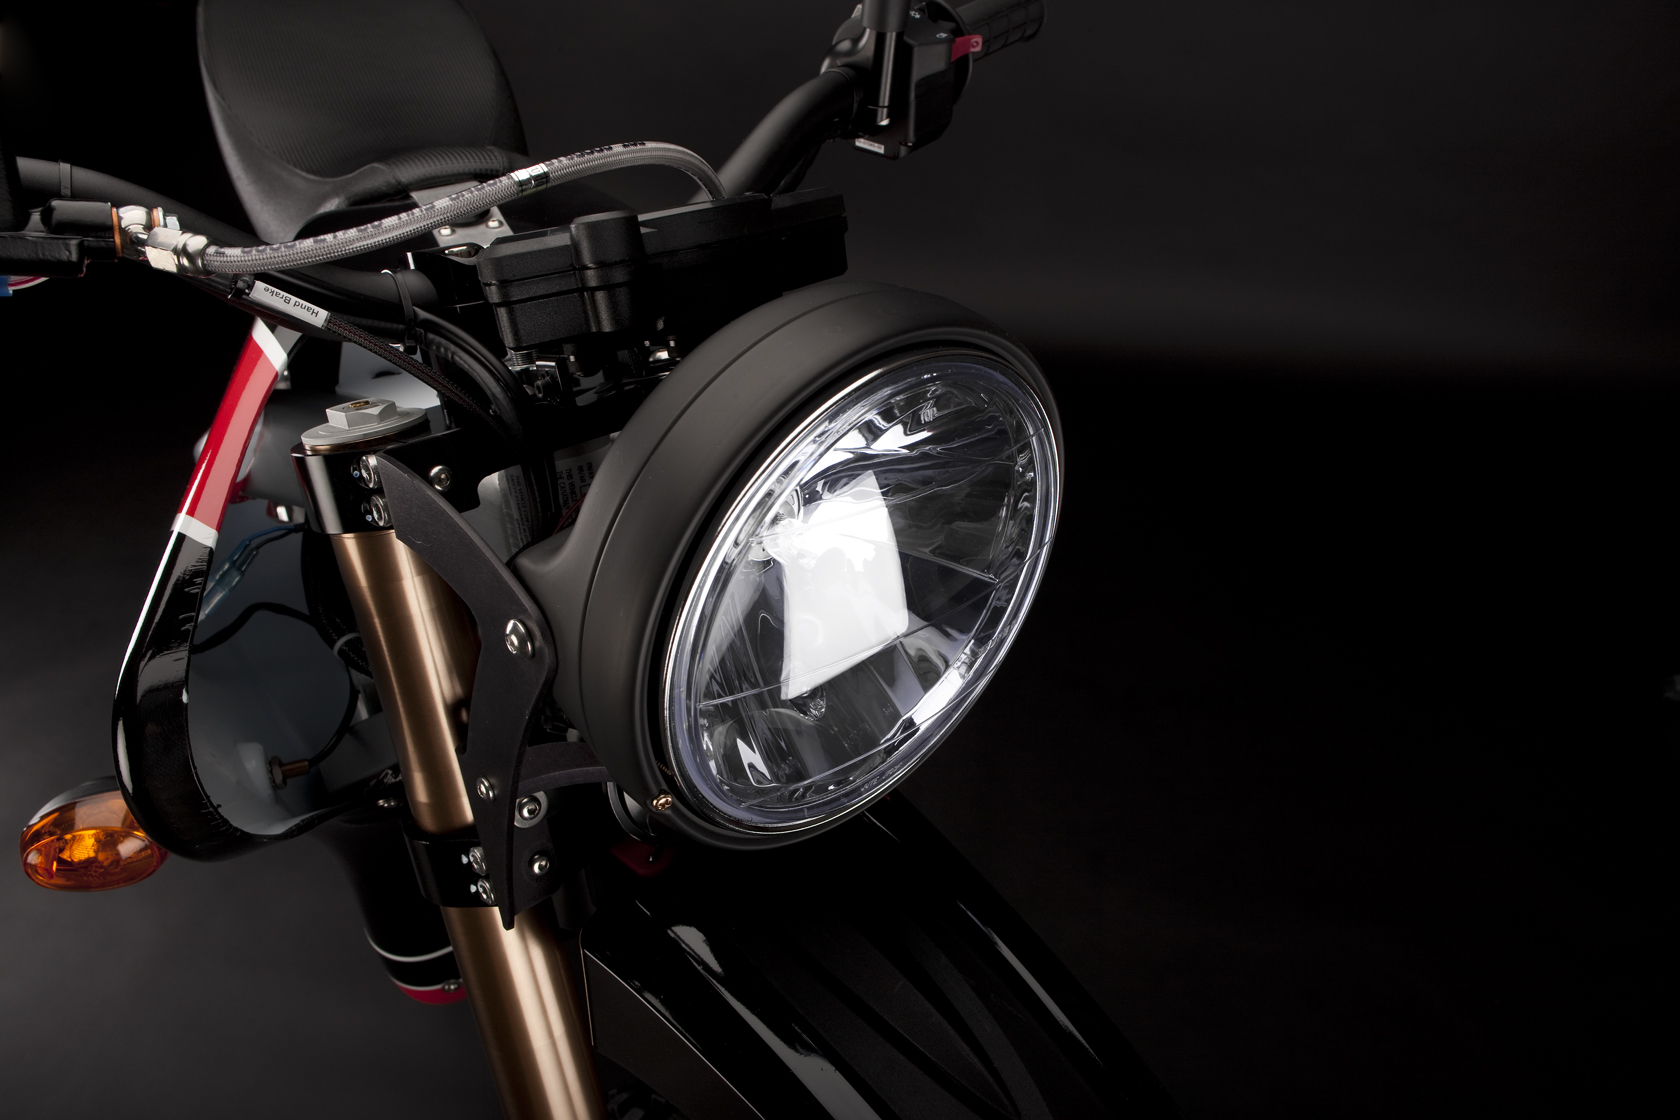 2010 Zero DS Electric Motorcycle: Headlight